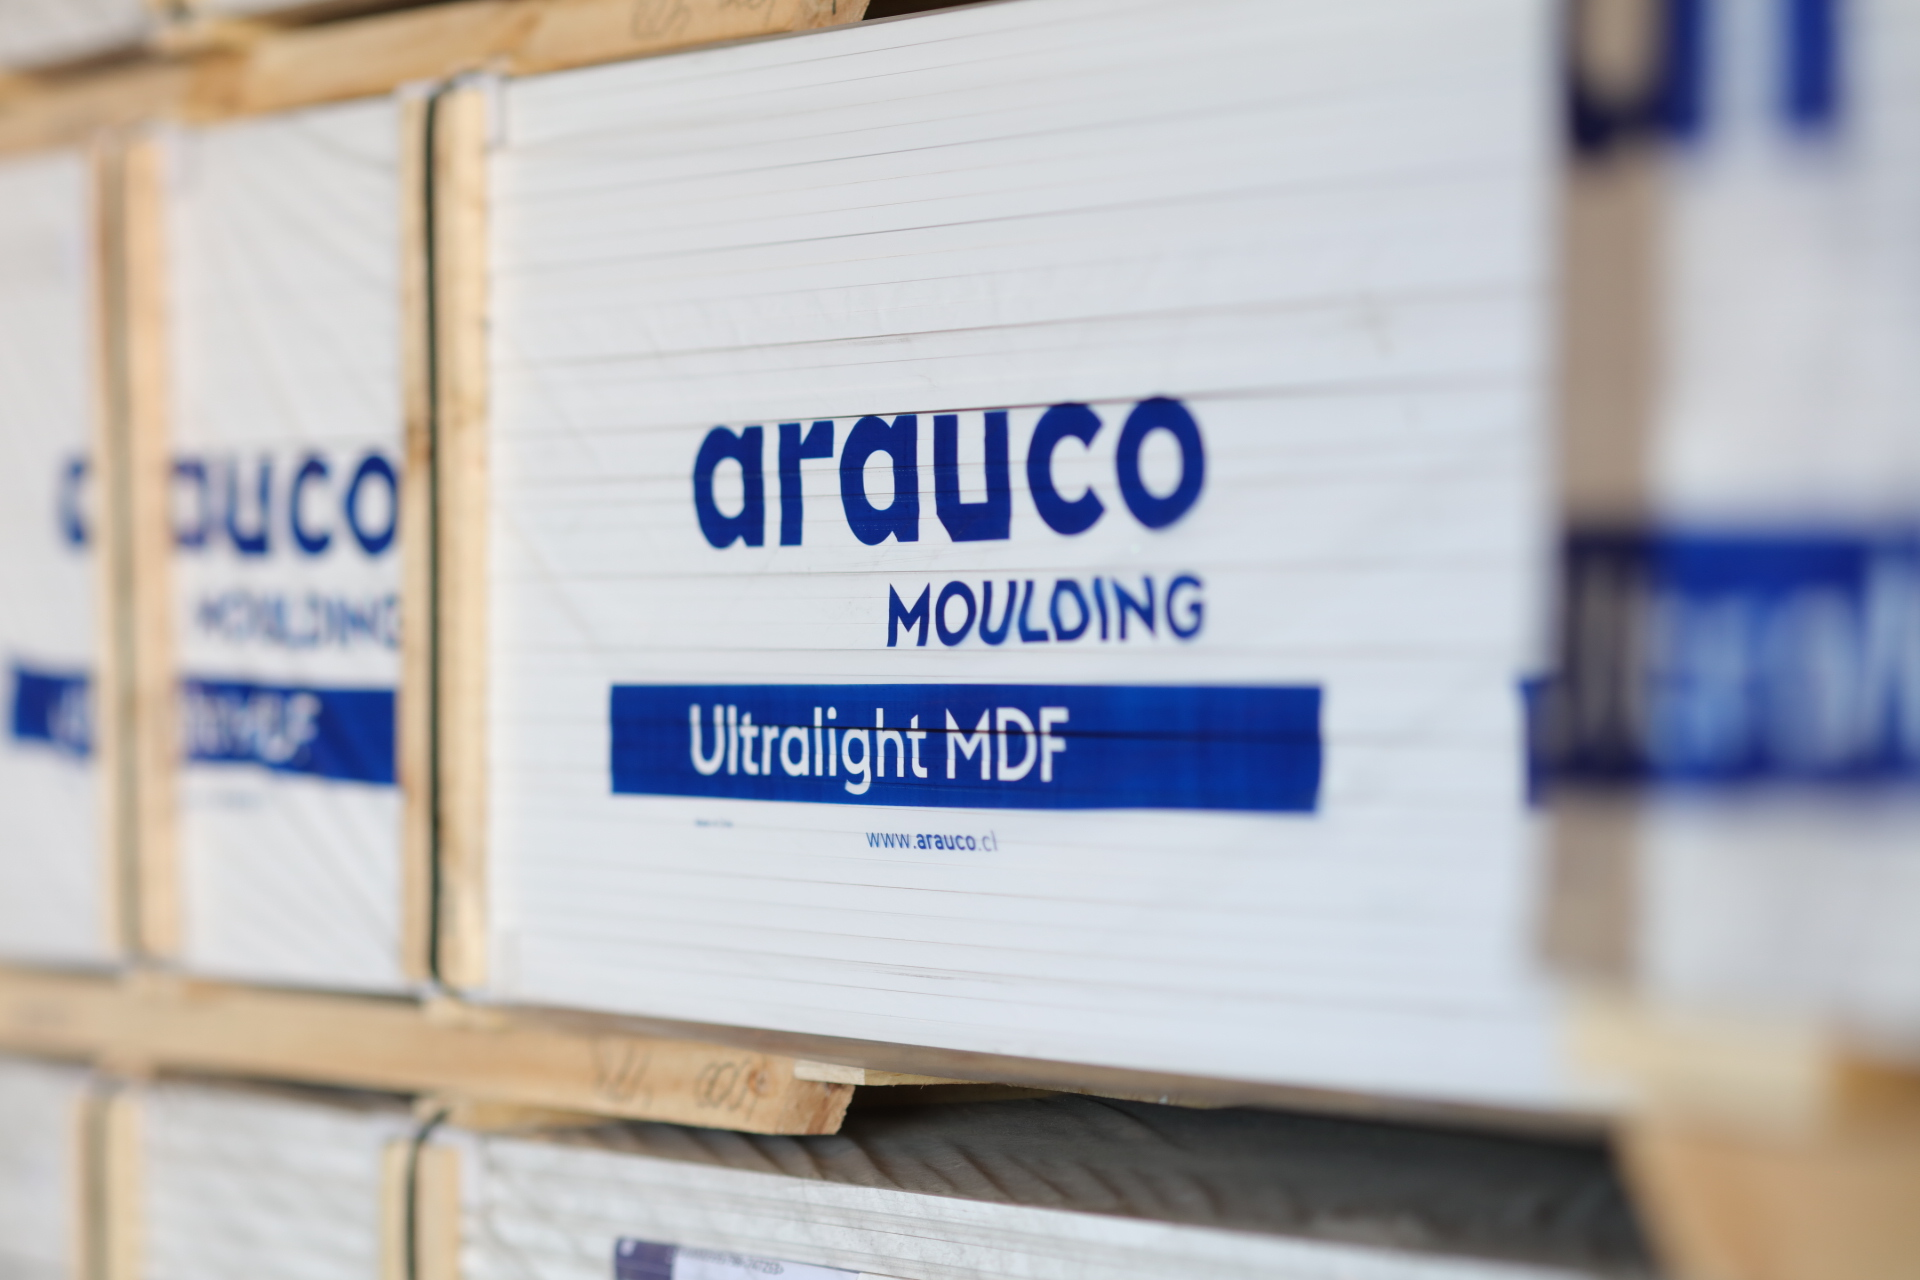 https://www.arauco.cl/chile/wp-content/uploads/sites/14/2020/04/IMGT4646.jpg